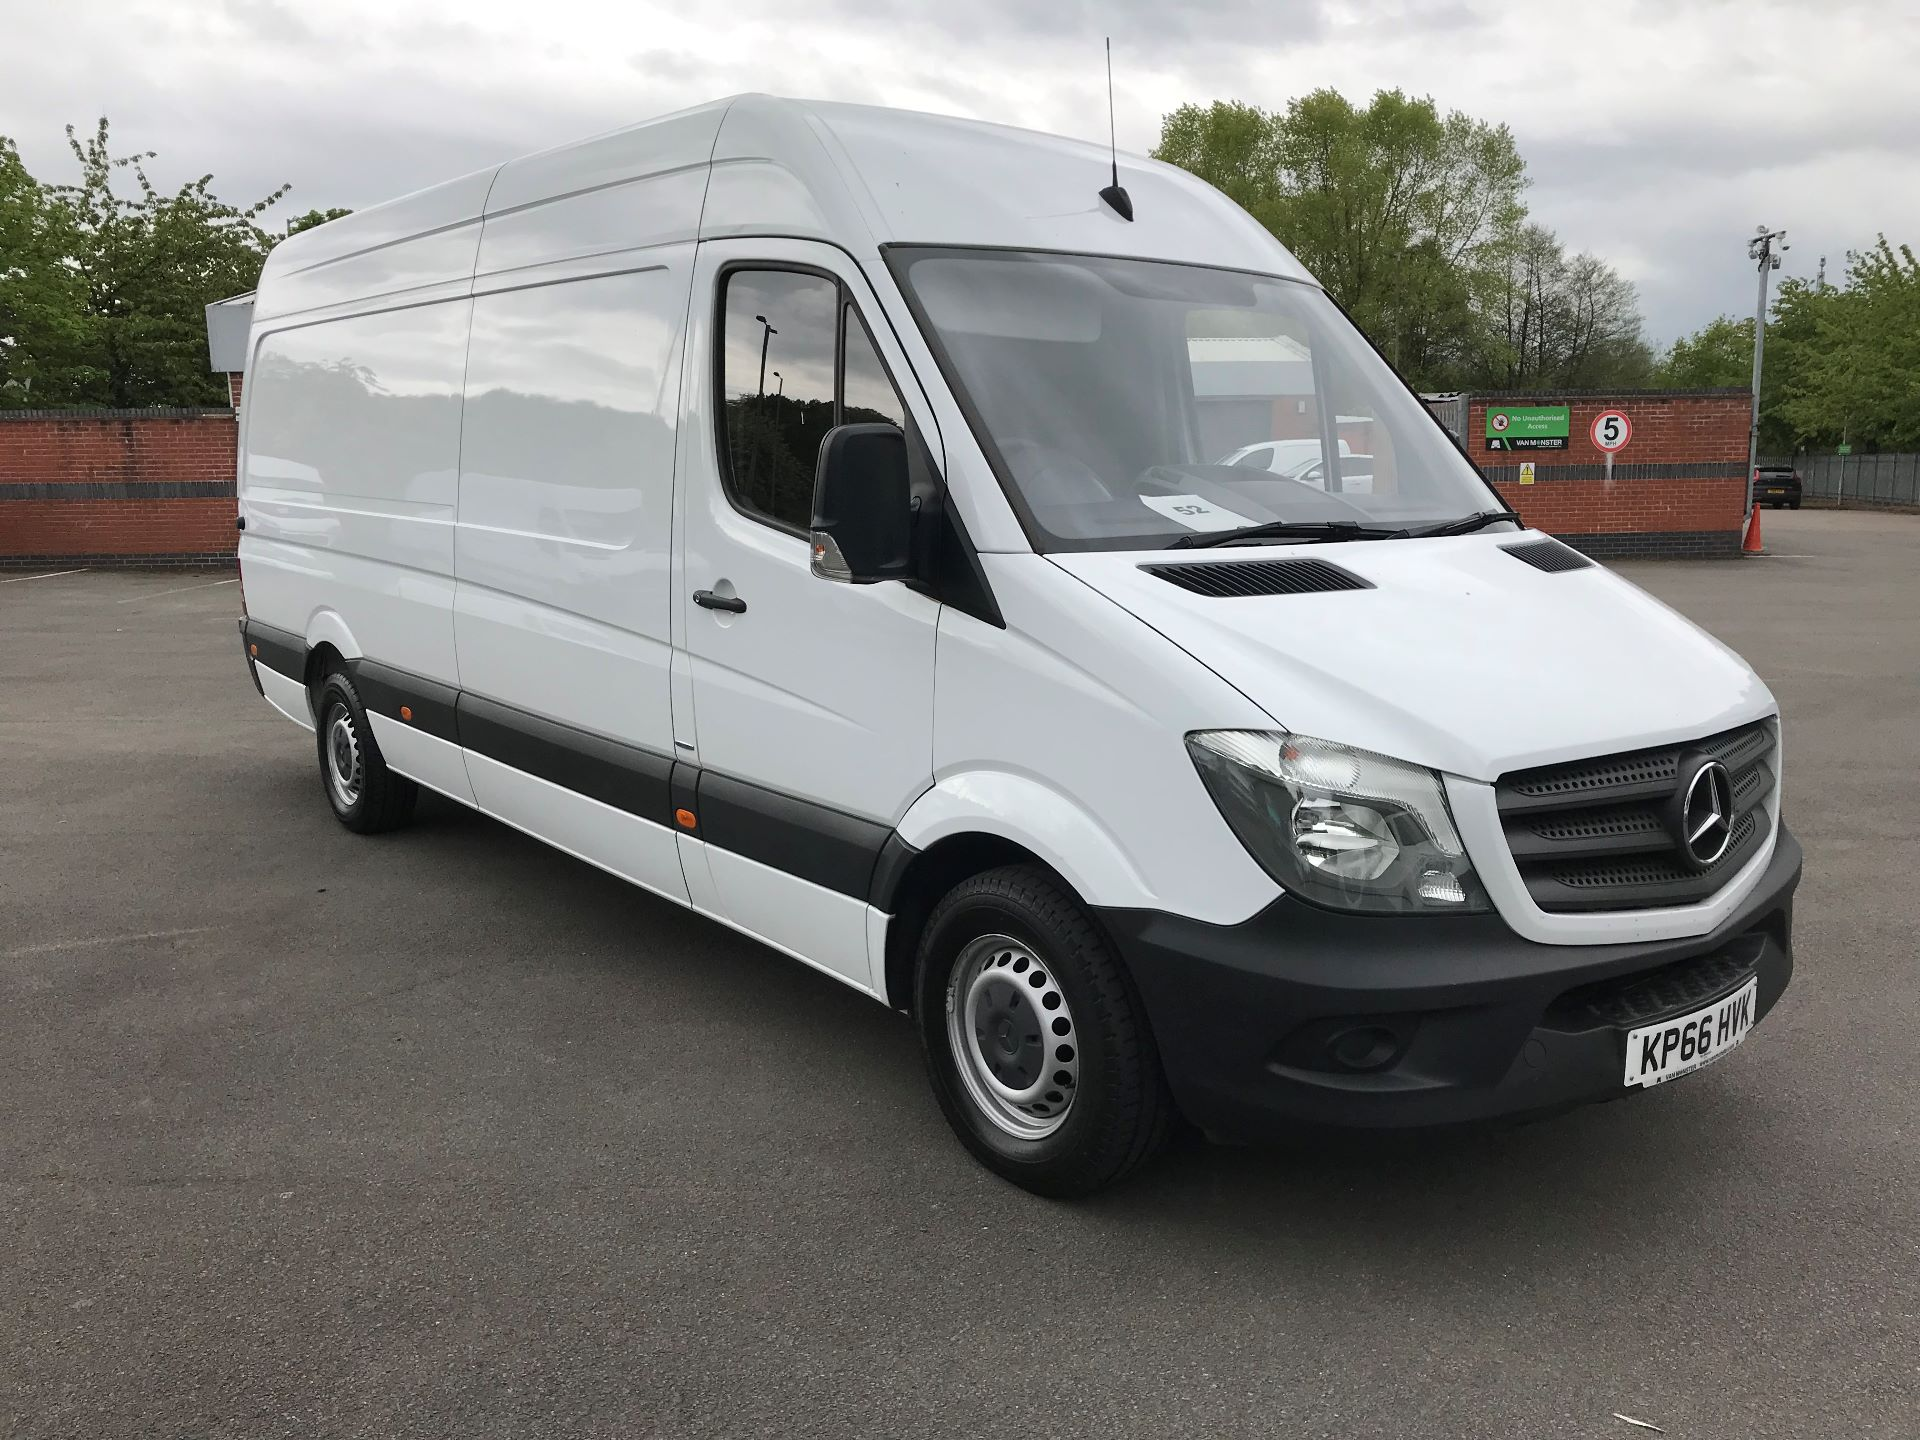 2016 Mercedes-Benz Sprinter 3.5T High Roof Van (KP66HVK)